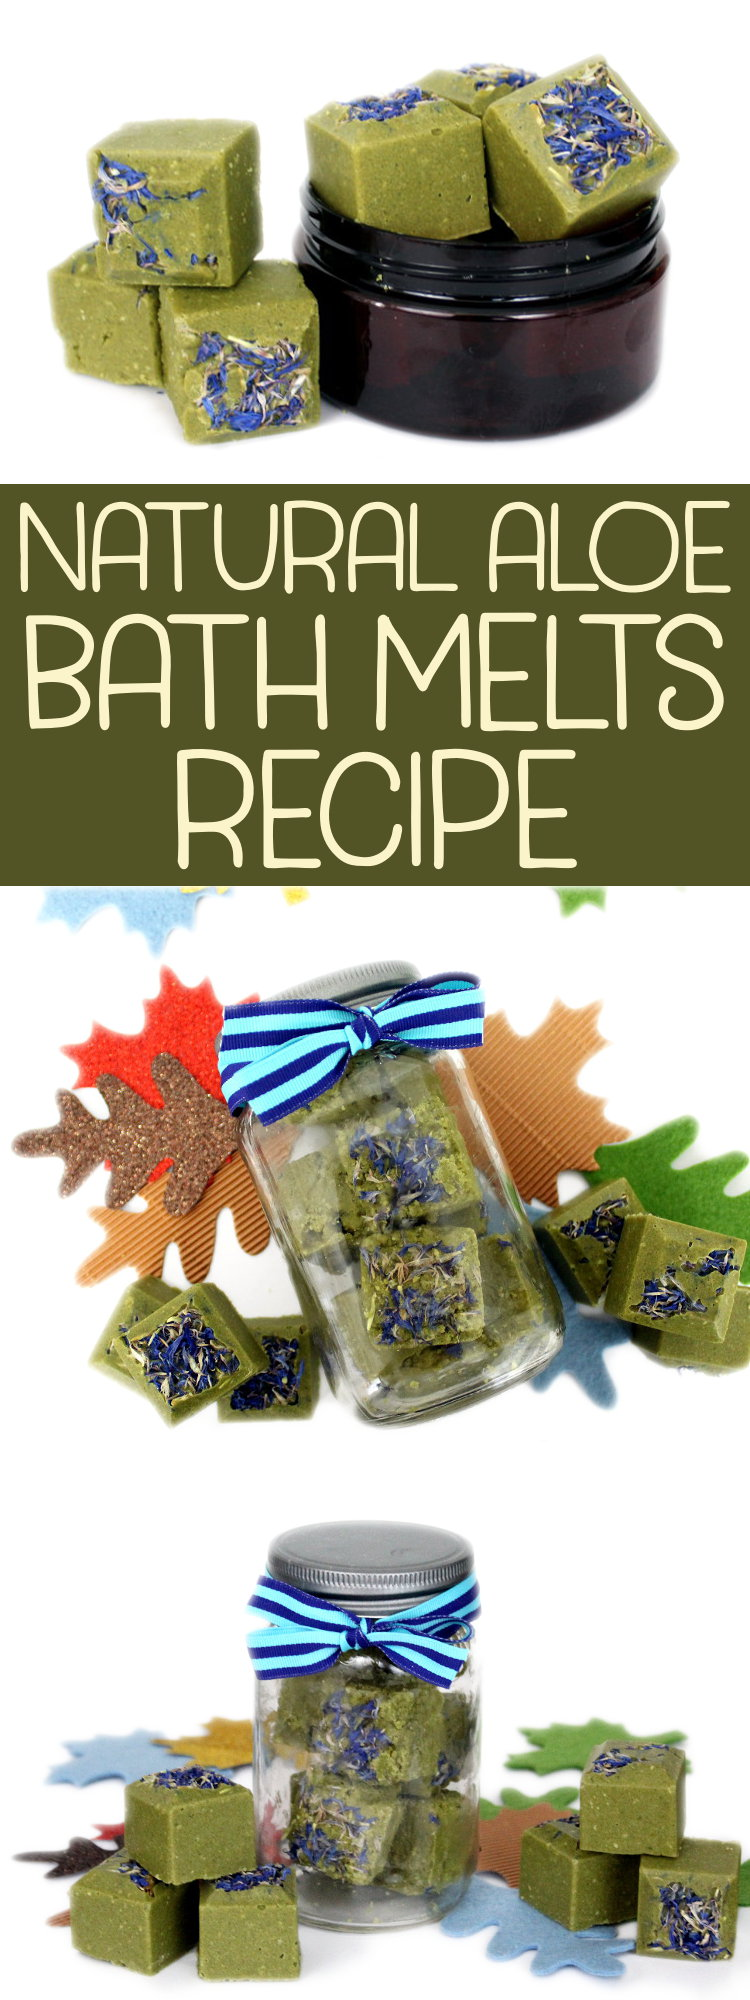 DIY Aloe Vera Bath Melts for Dry Skin! If you suffer from dry skin that's easily irritated by commercial solutions, this aloe vera bath melts recipe is a great natural alternative! Aloe vera, a versatile plant hailed as a magical skin saver, has a long history of use in skin care products and has the ability to promote healing, soothe and moisturize dry skin, fight dandruff and promote hair growth. #AloeVera #diy #BathMelts #crafts #skincare #naturalskincare #naturalremedies #bath #beauty